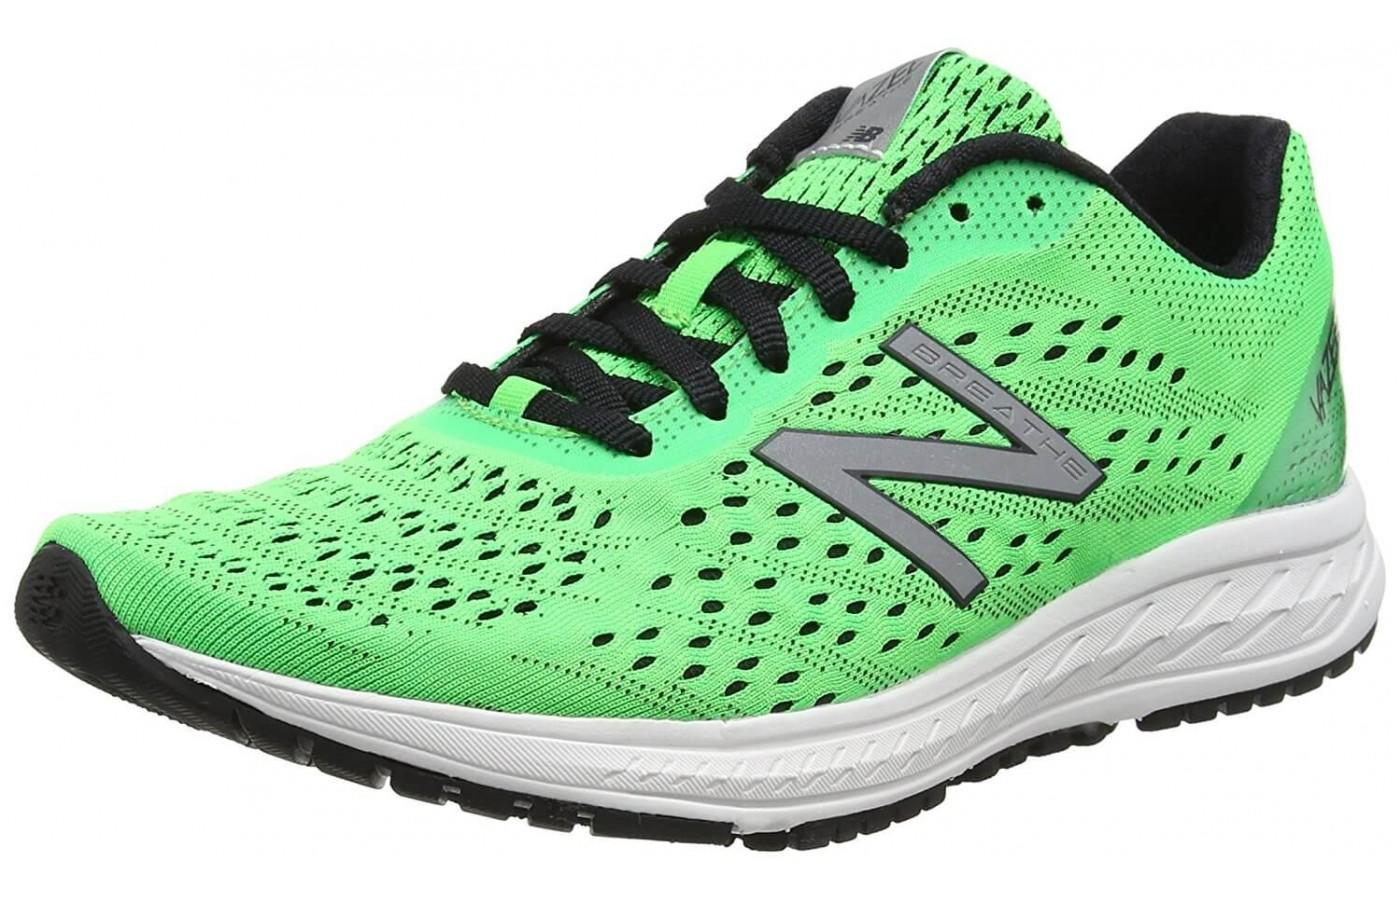 The redesigned Vazee Breathe V2 provides additional breathablity and overall comfort for the runner.